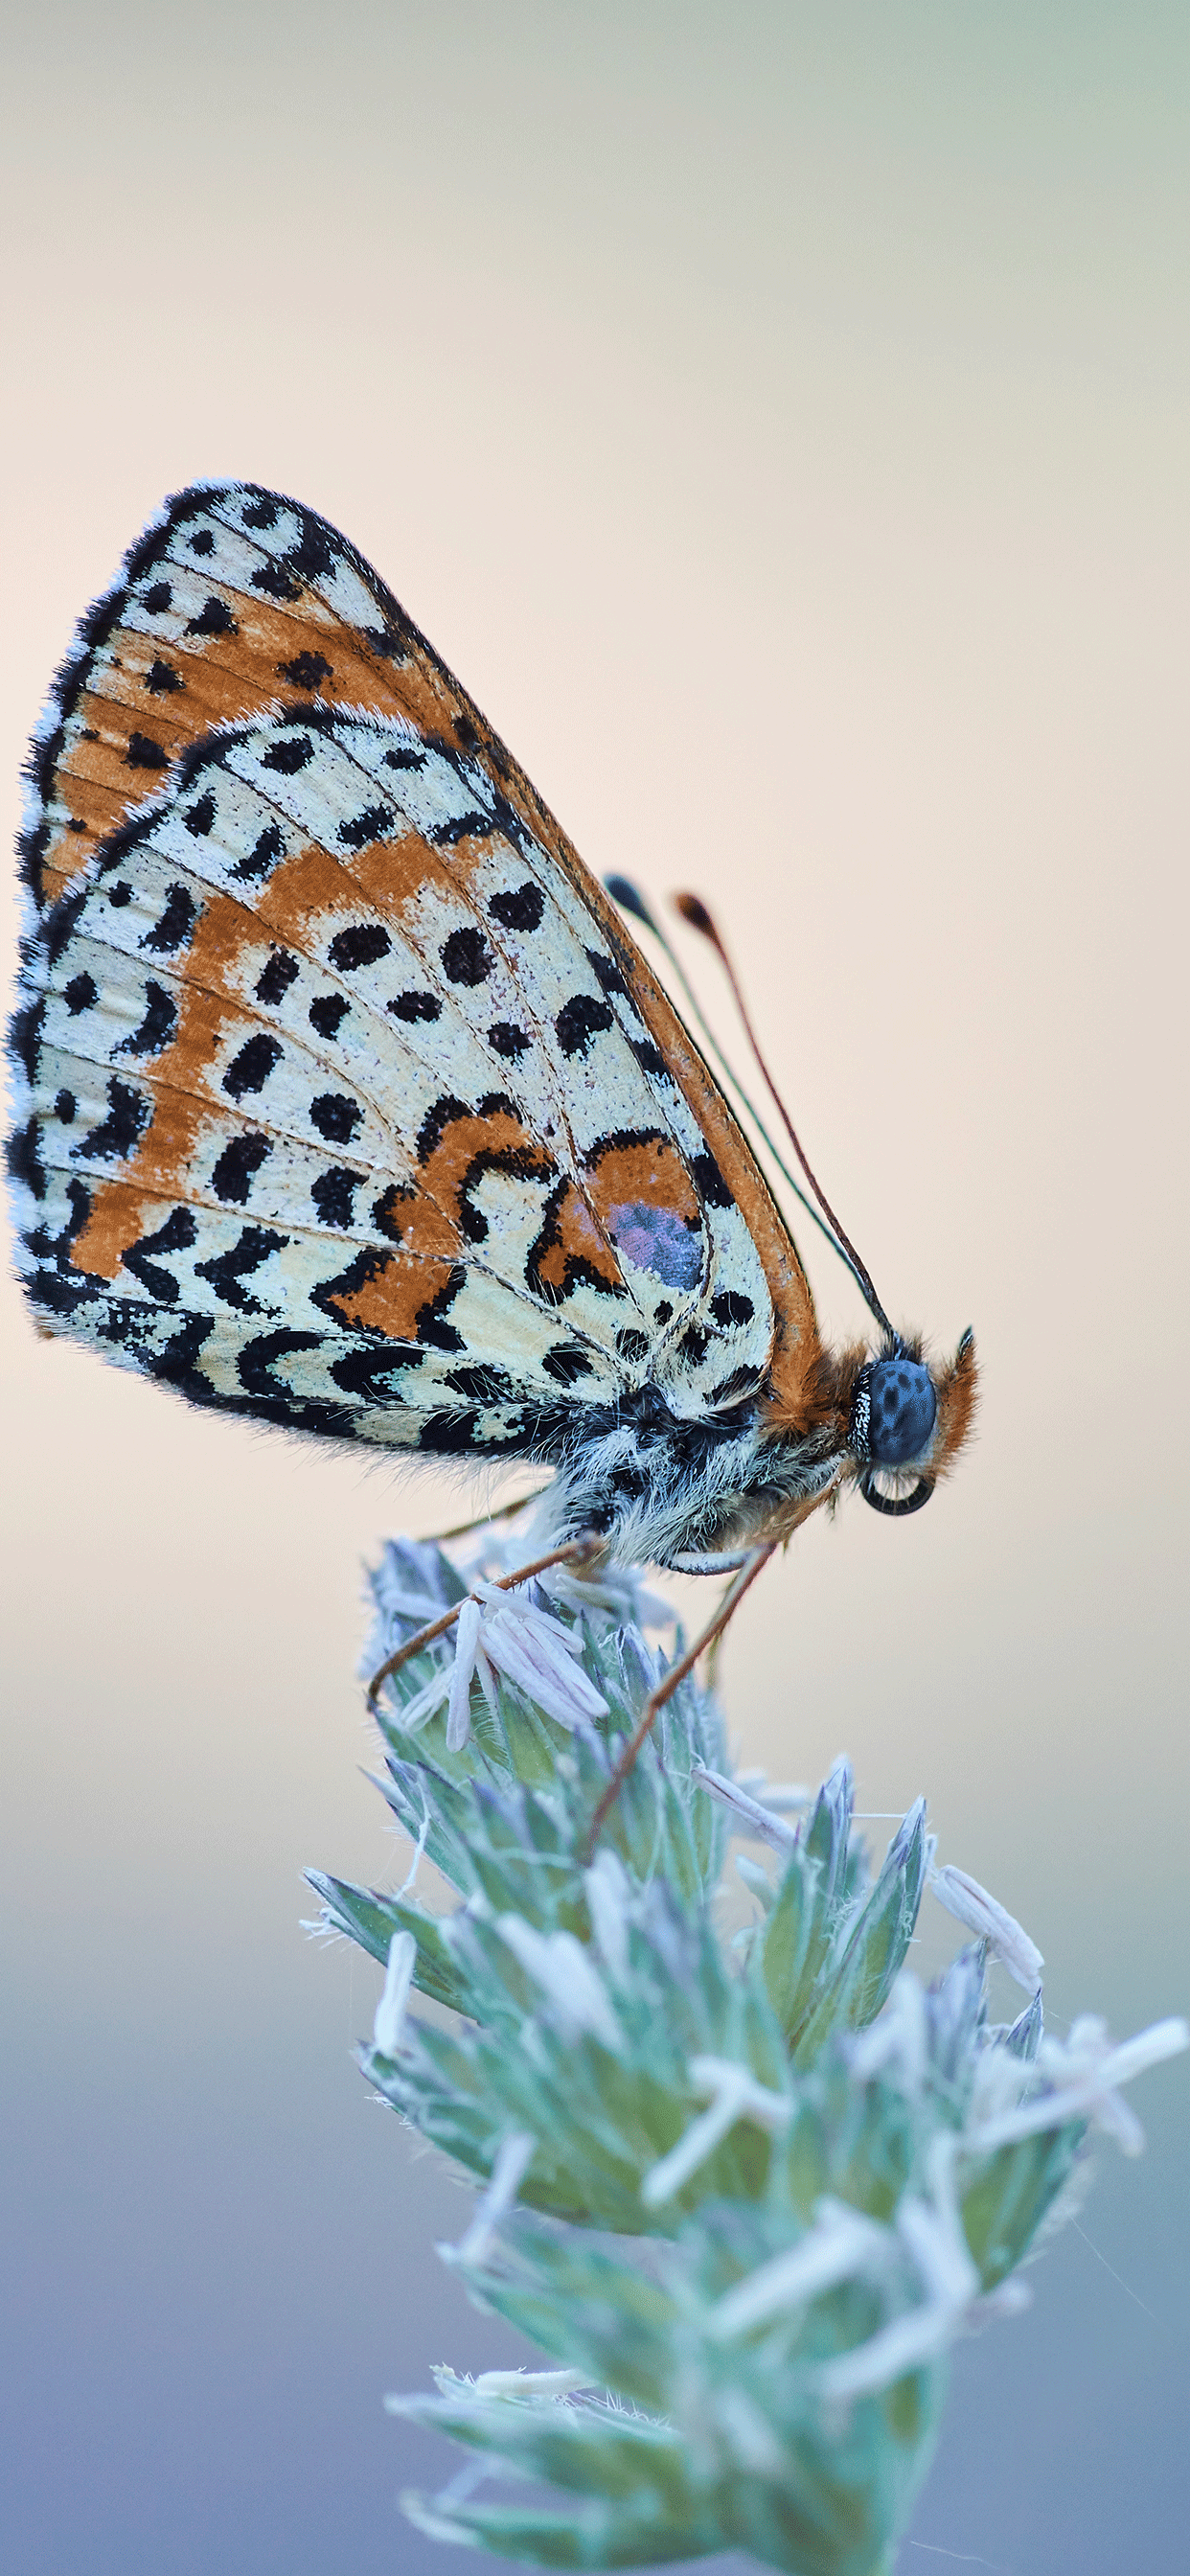 iPhone wallpaper butterfly stains Butterfly